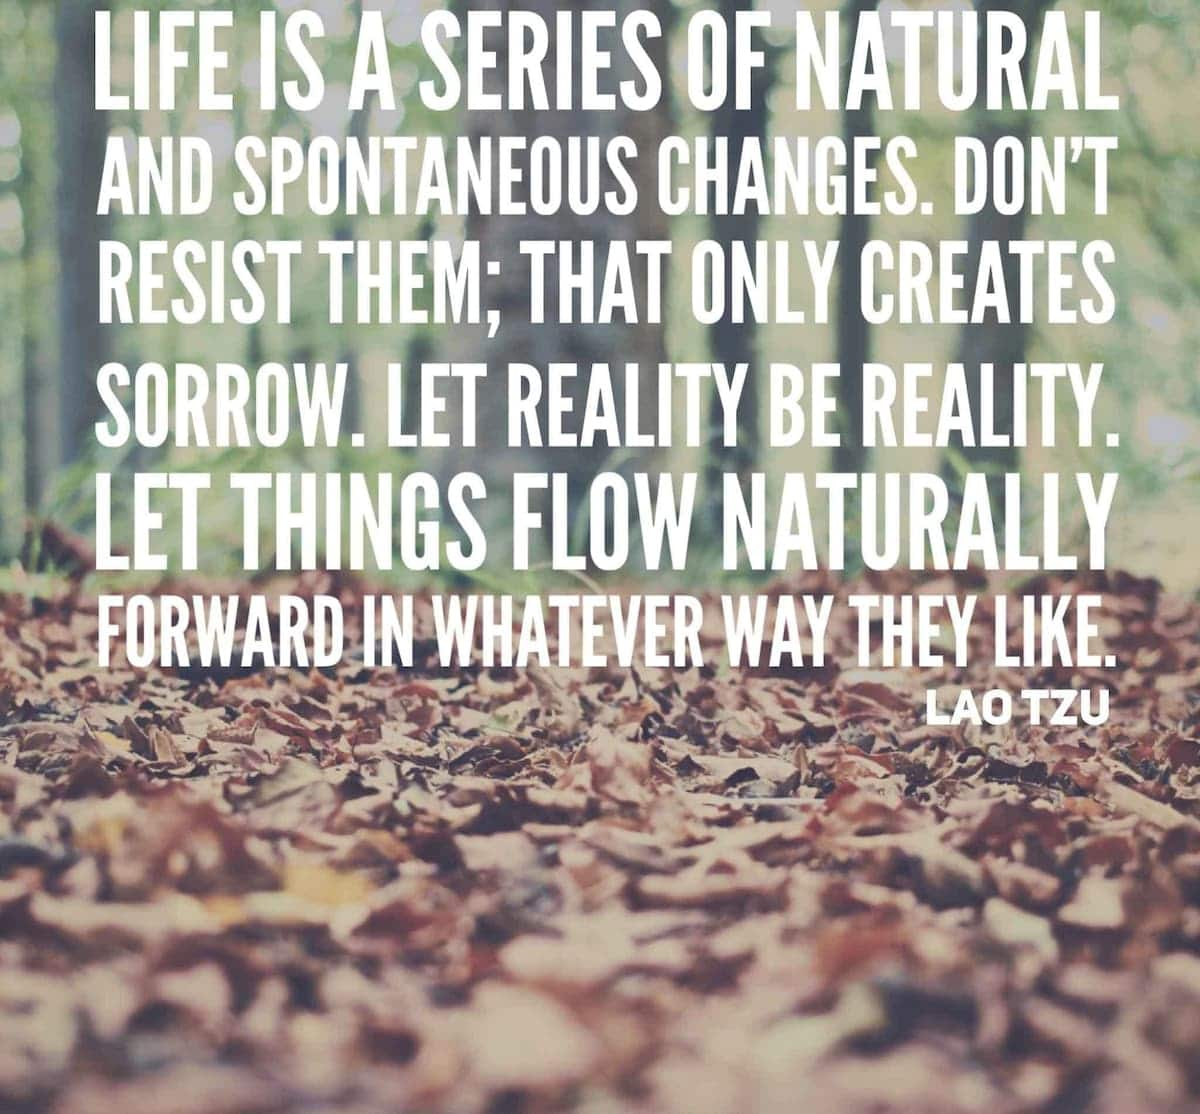 Quotes about change and moving on List of quotes about change Inspirational quotes about change List of quotes about change